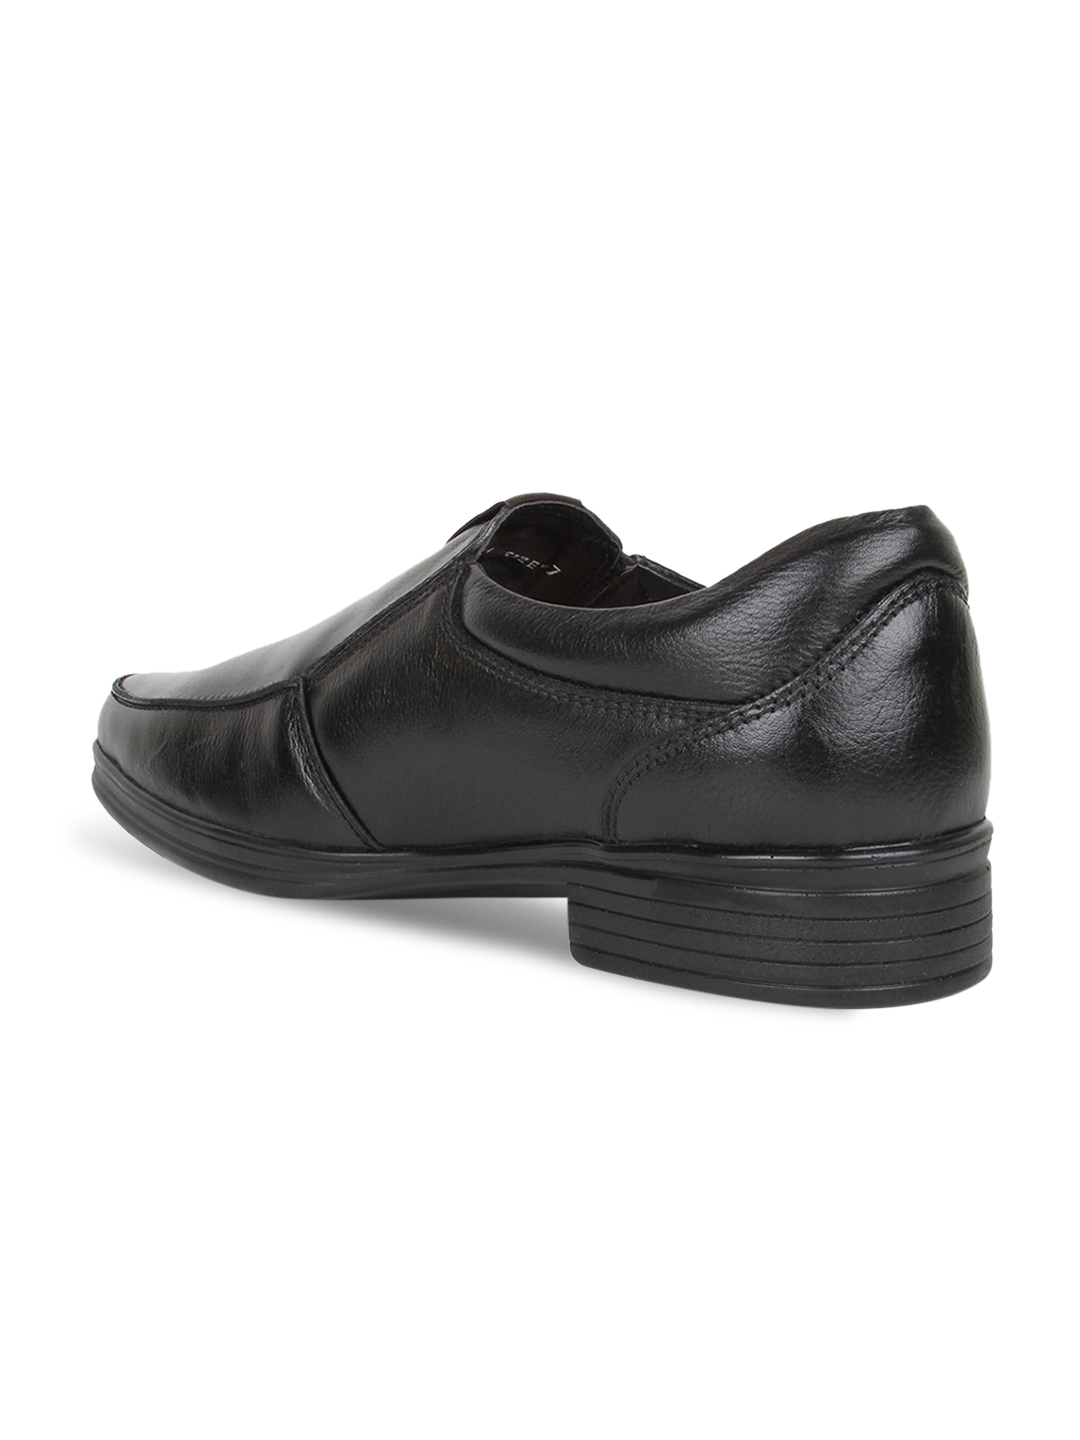 myntra hubland black leather formal shoes 686843 buy